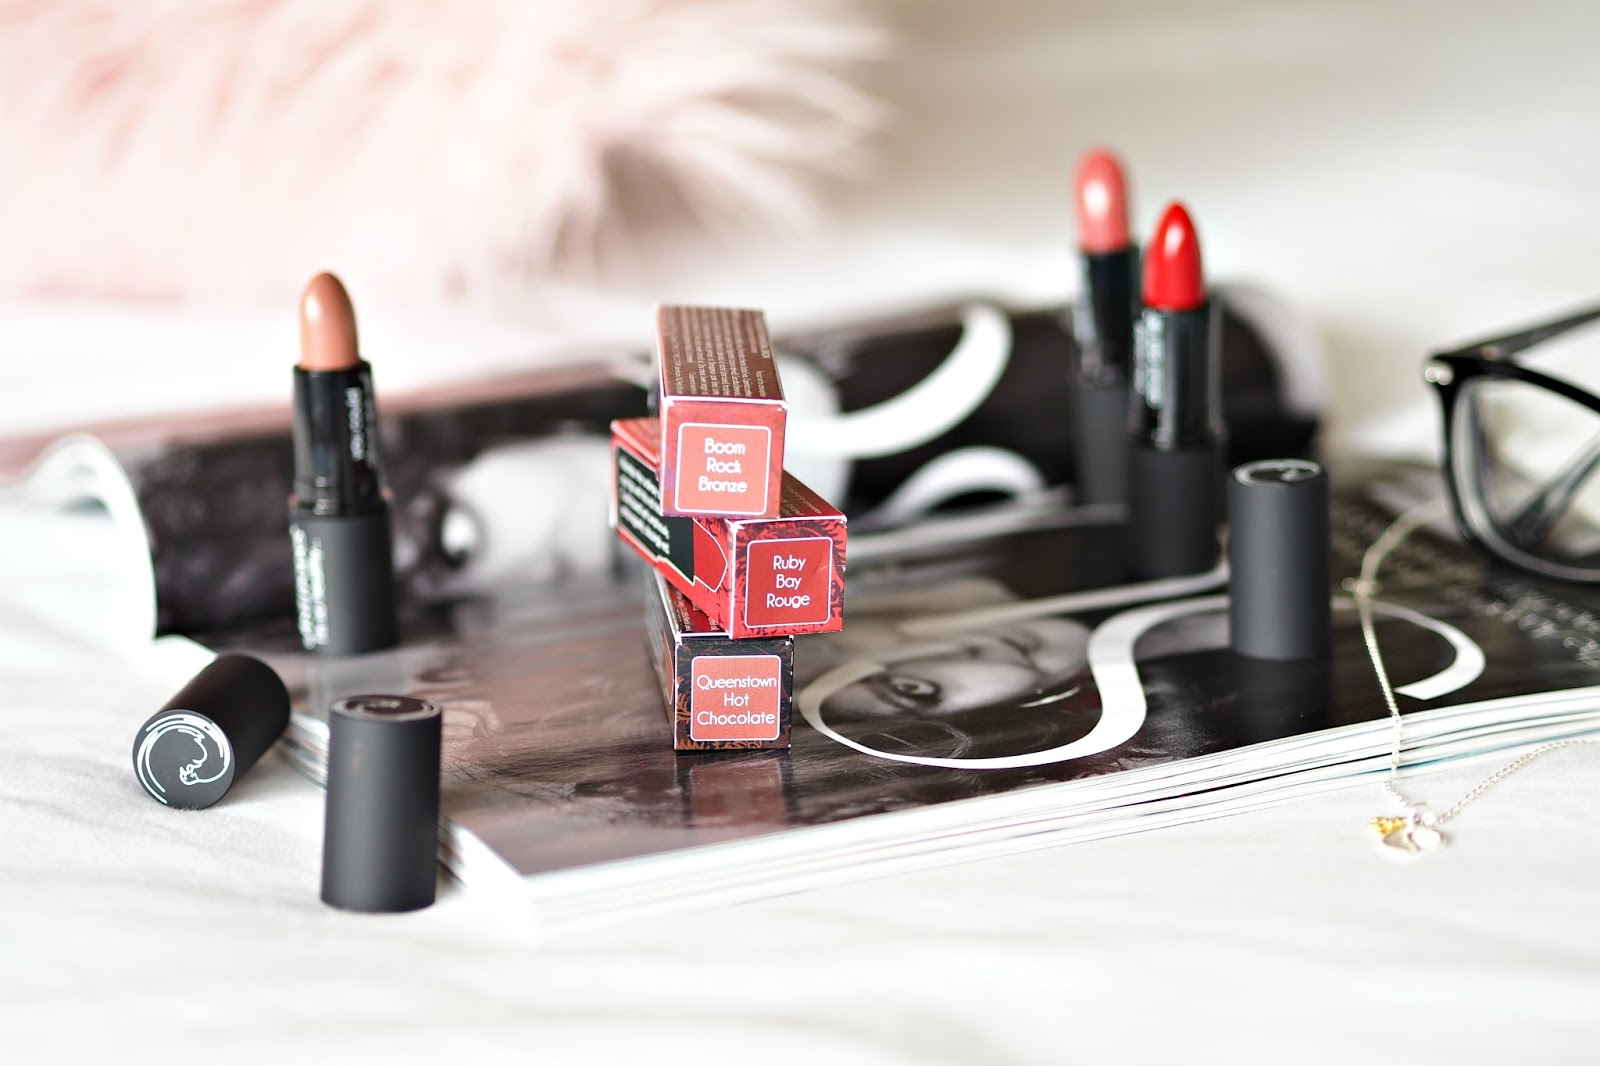 Antipodes Lipsticks review